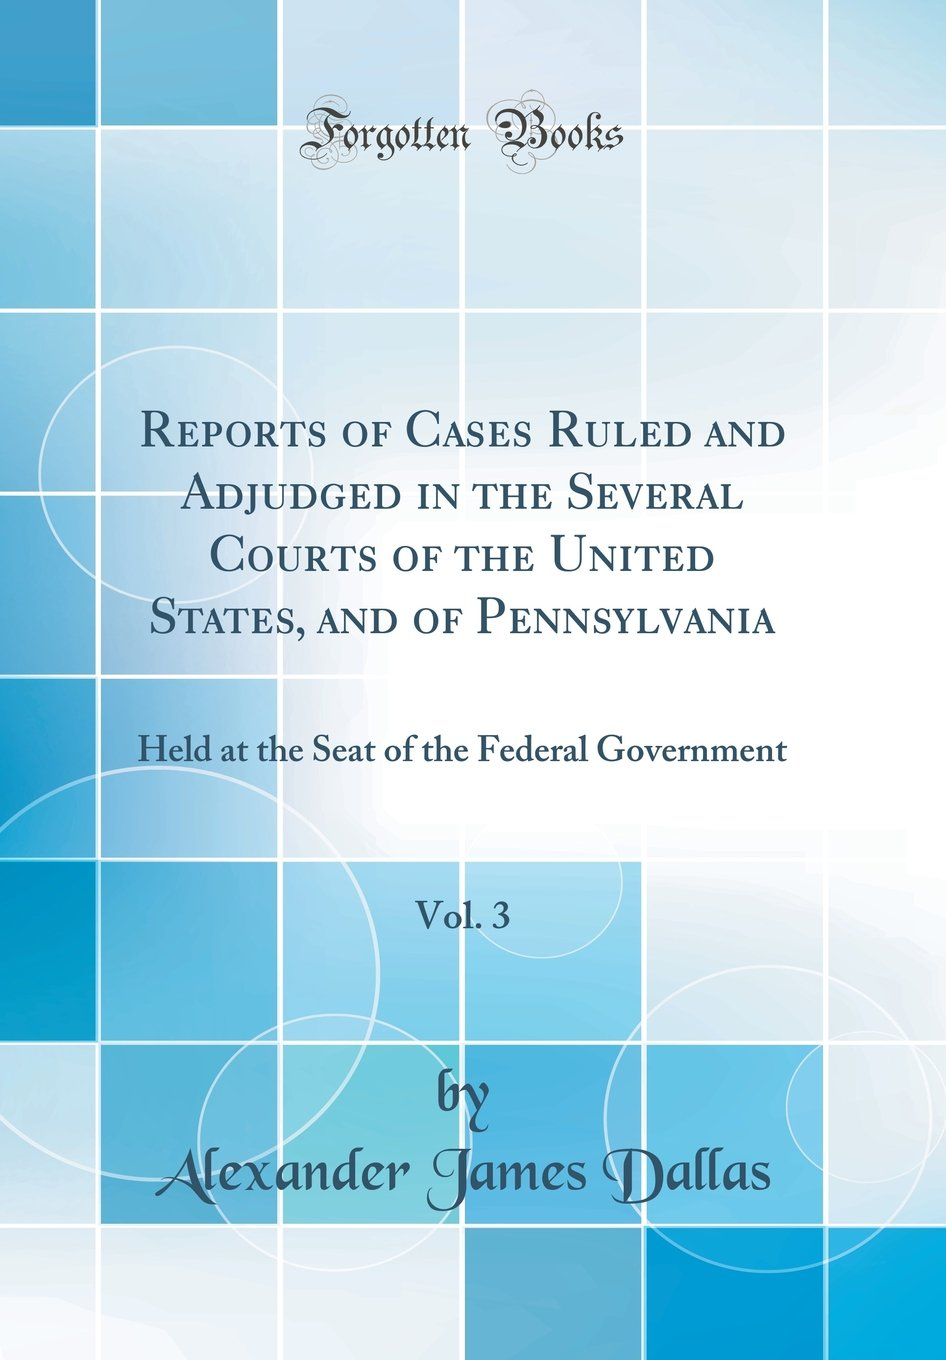 Download Reports of Cases Ruled and Adjudged in the Several Courts of the United States, and of Pennsylvania, Vol. 3: Held at the Seat of the Federal Government (Classic Reprint) pdf